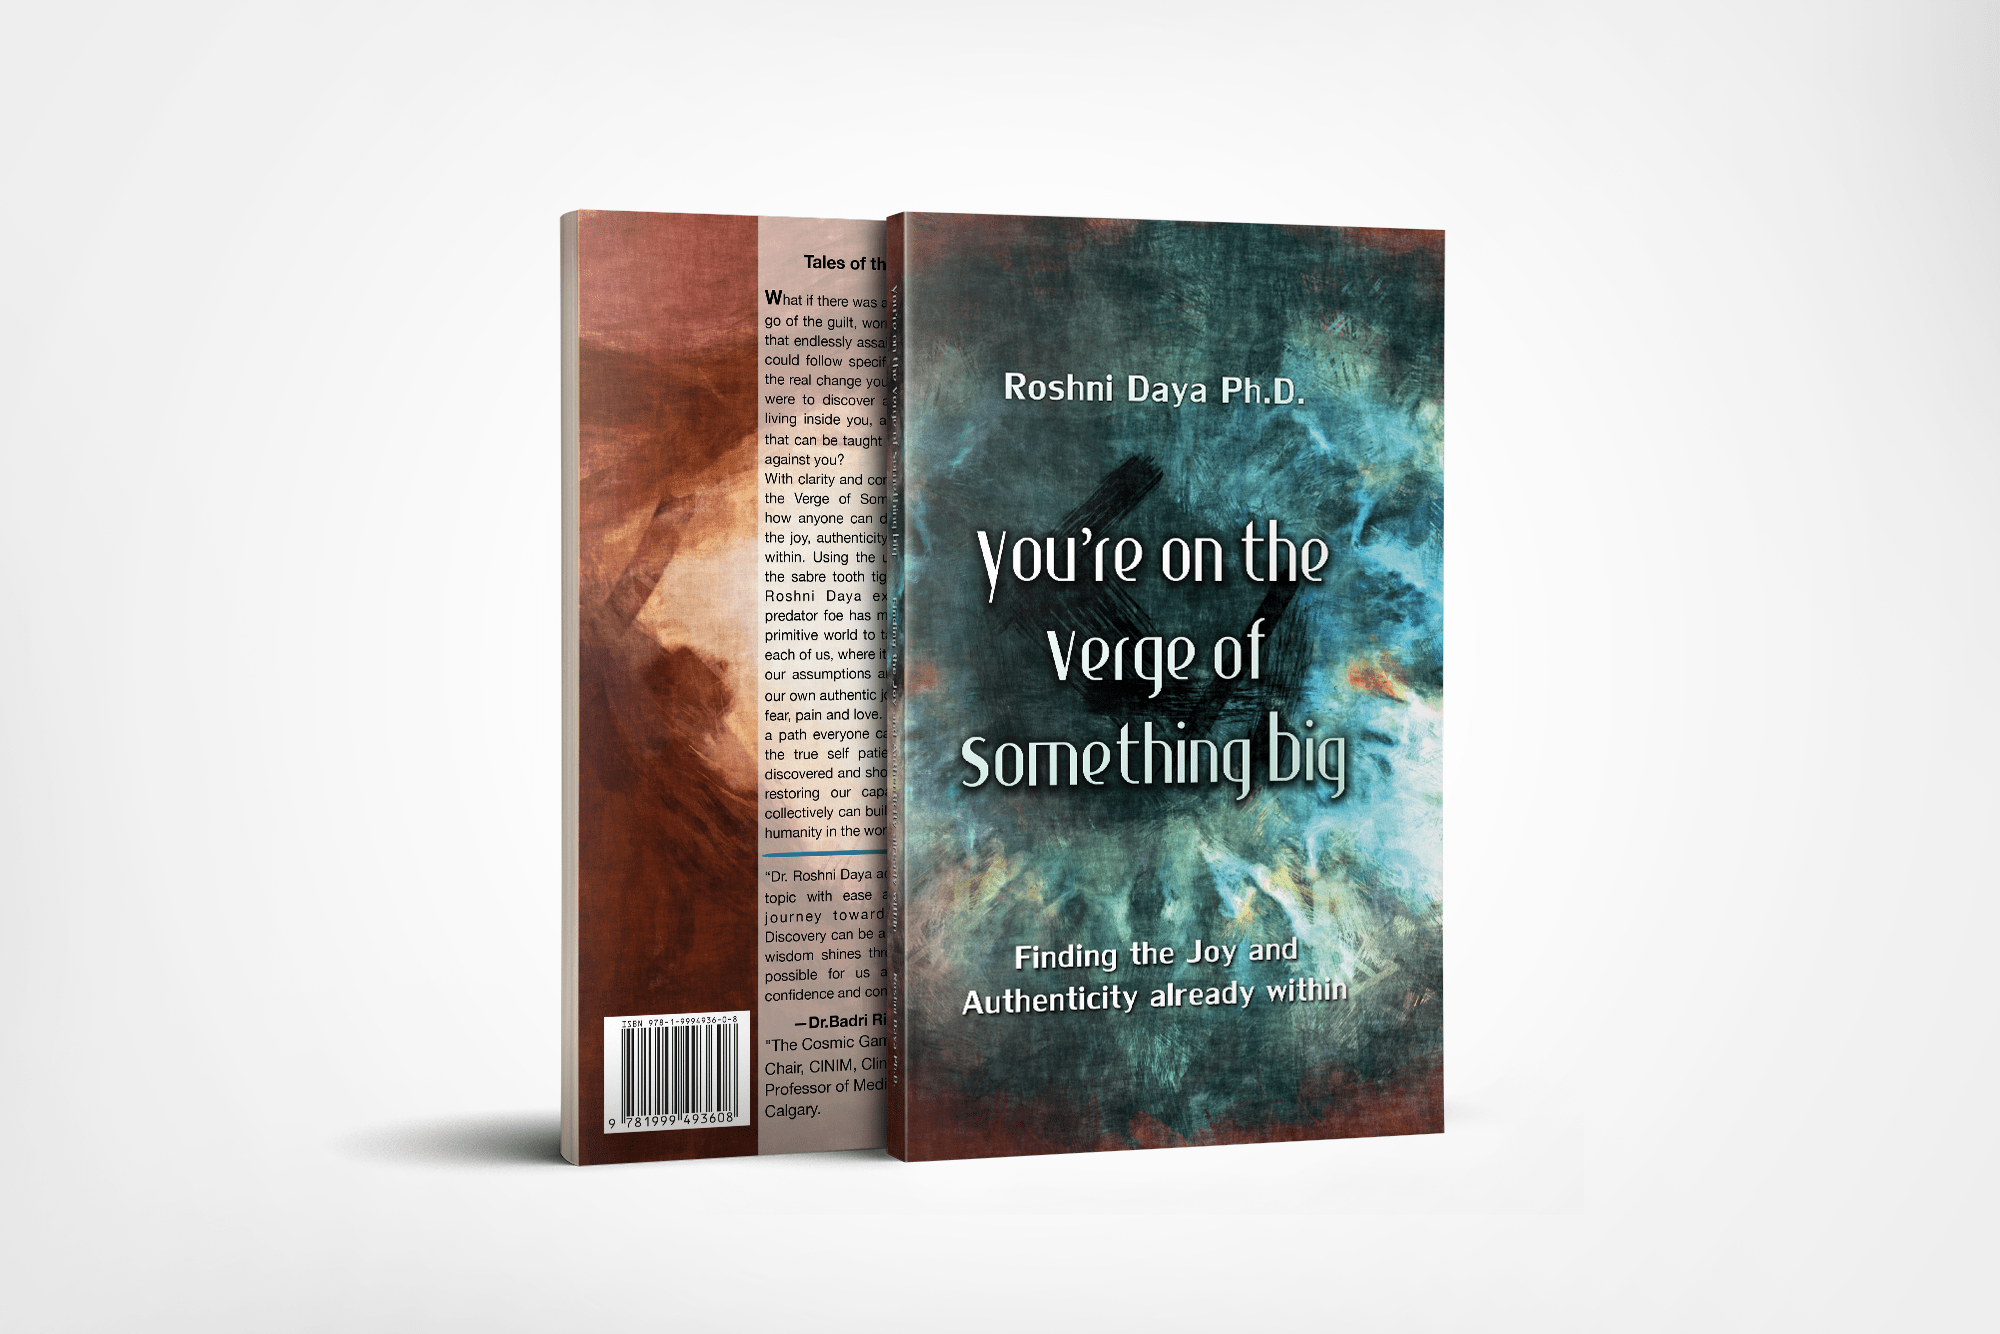 You're on the Verge of Something Big. - In the first book of the series, Dr. Daya speaks to a process of peaceful protest: an inner shift that allows for love, compassion, joy, peace and gratitude to make its way outward….authentically.